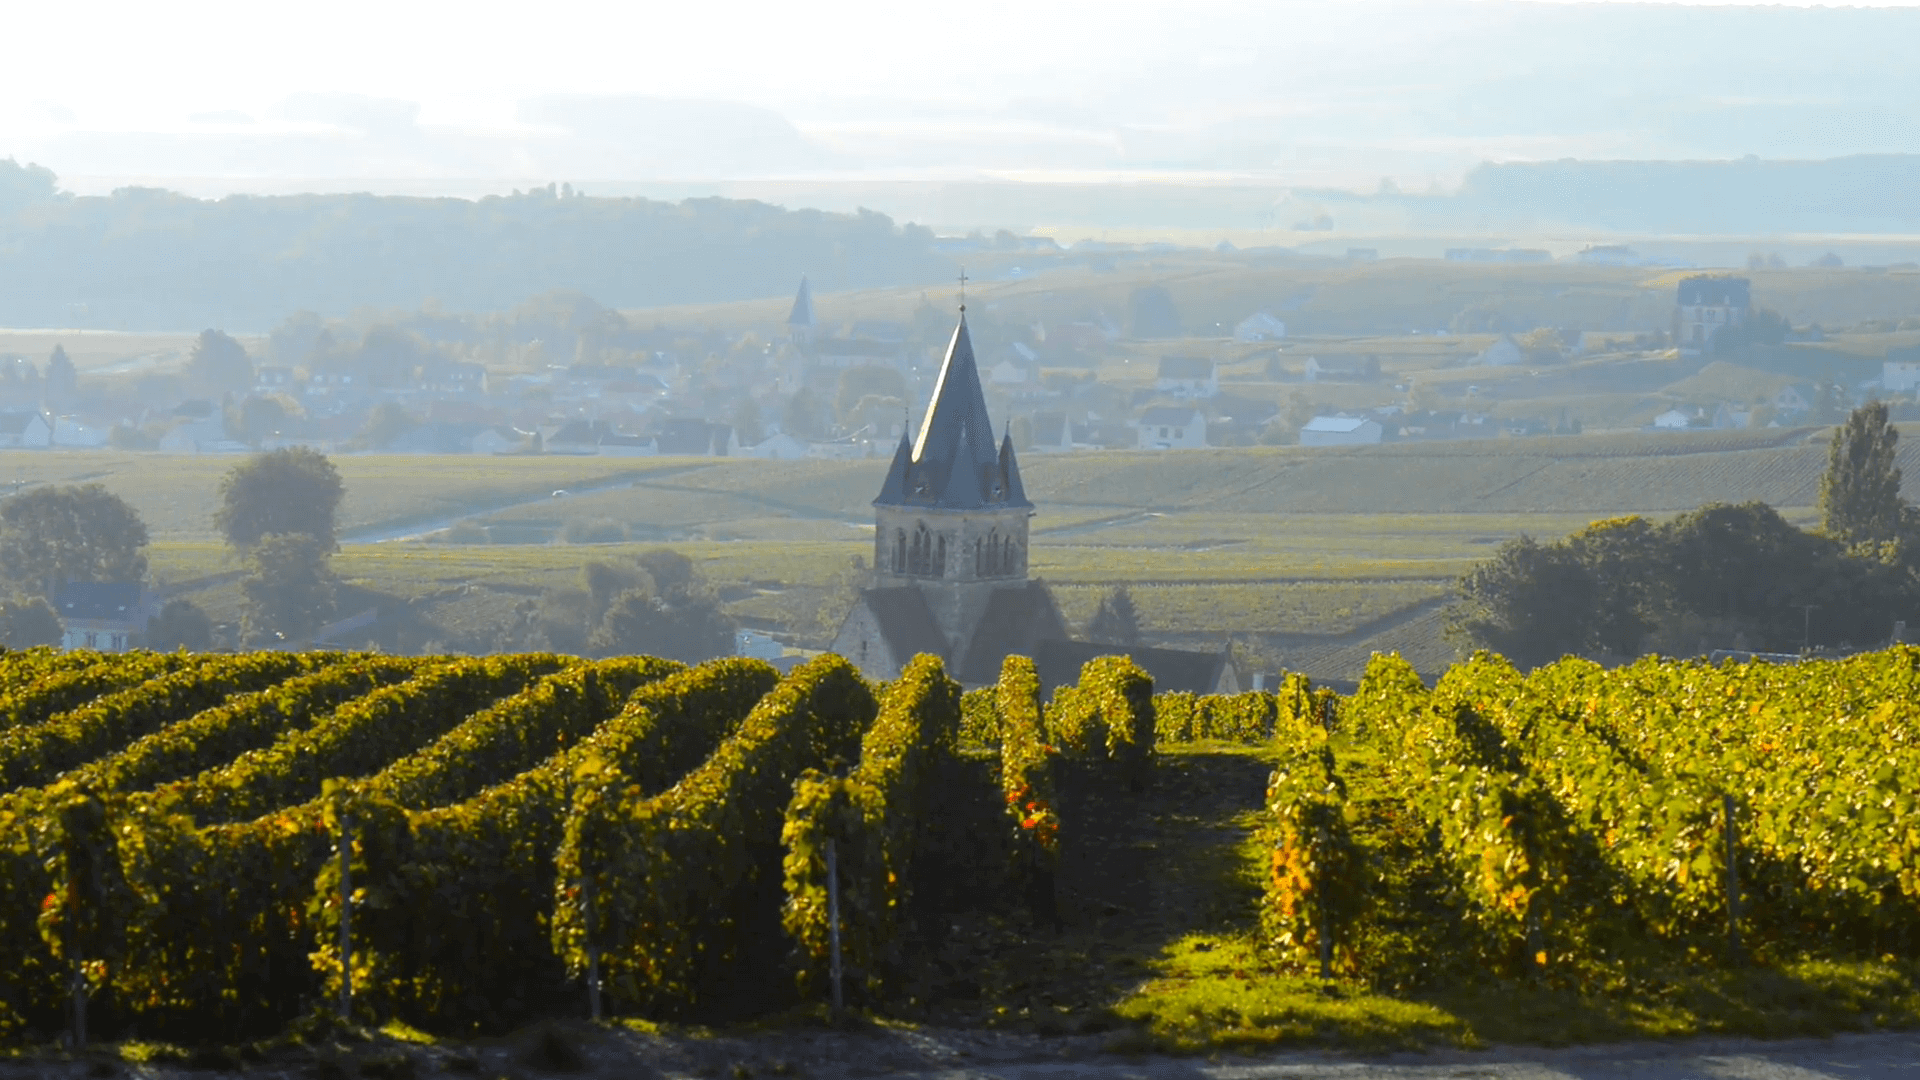 champagne-vineyards-in-the-montagne-de-reims-area-of-the-marne999999